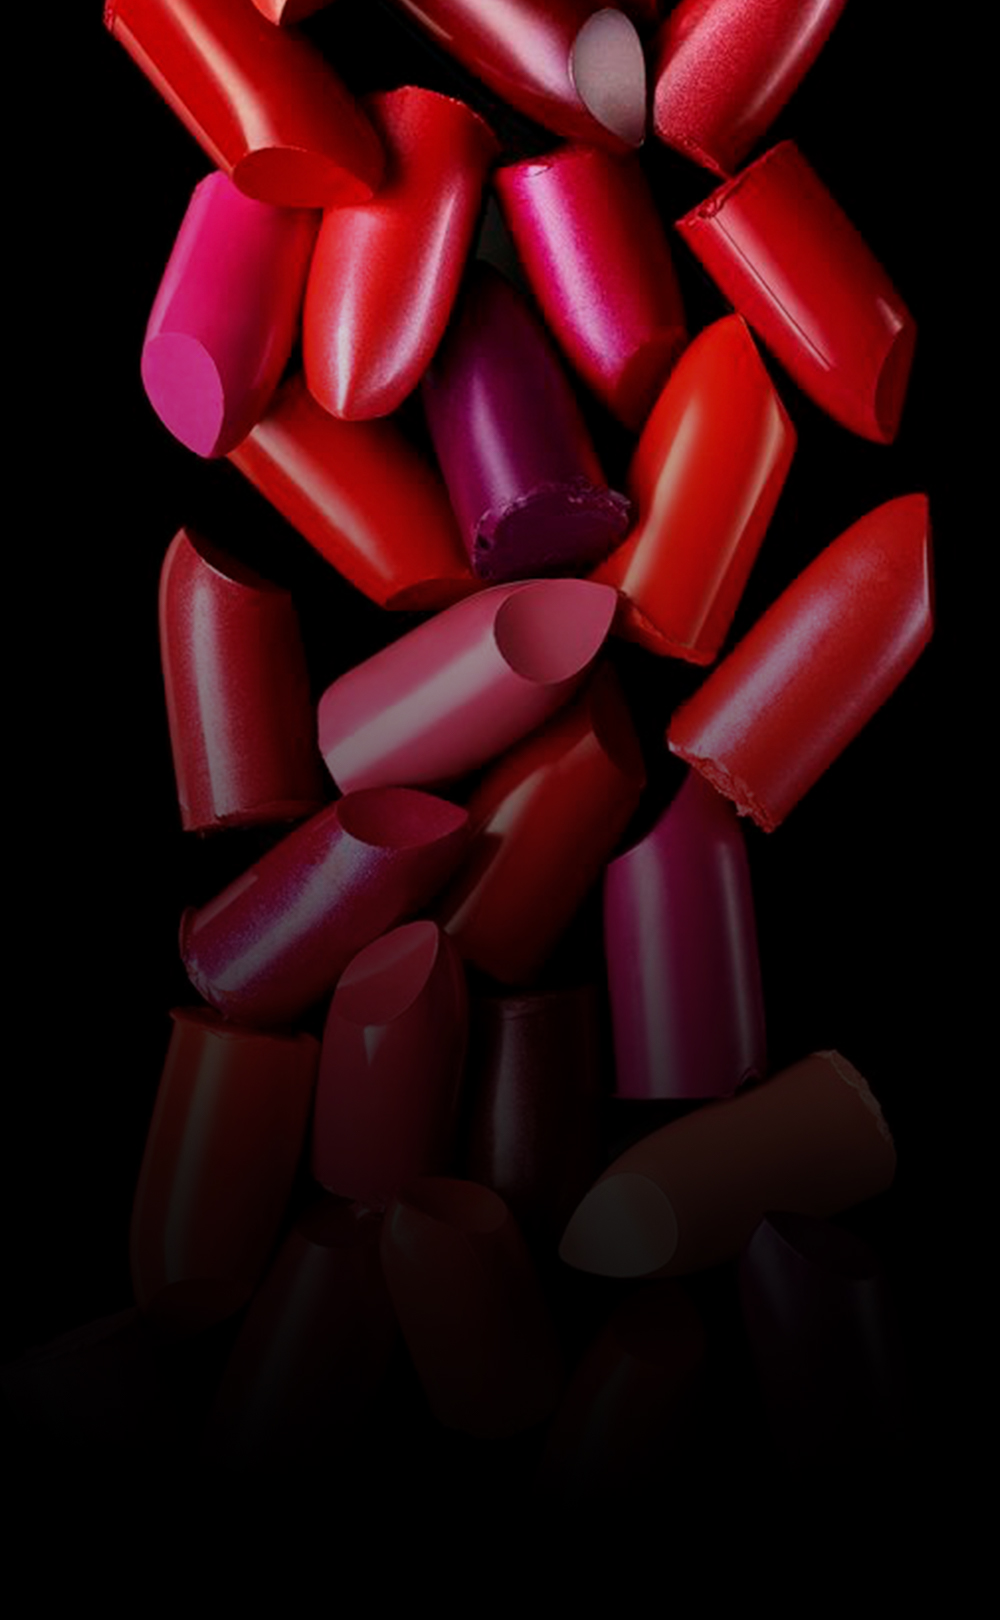 client example of user-generated content – lipsticks